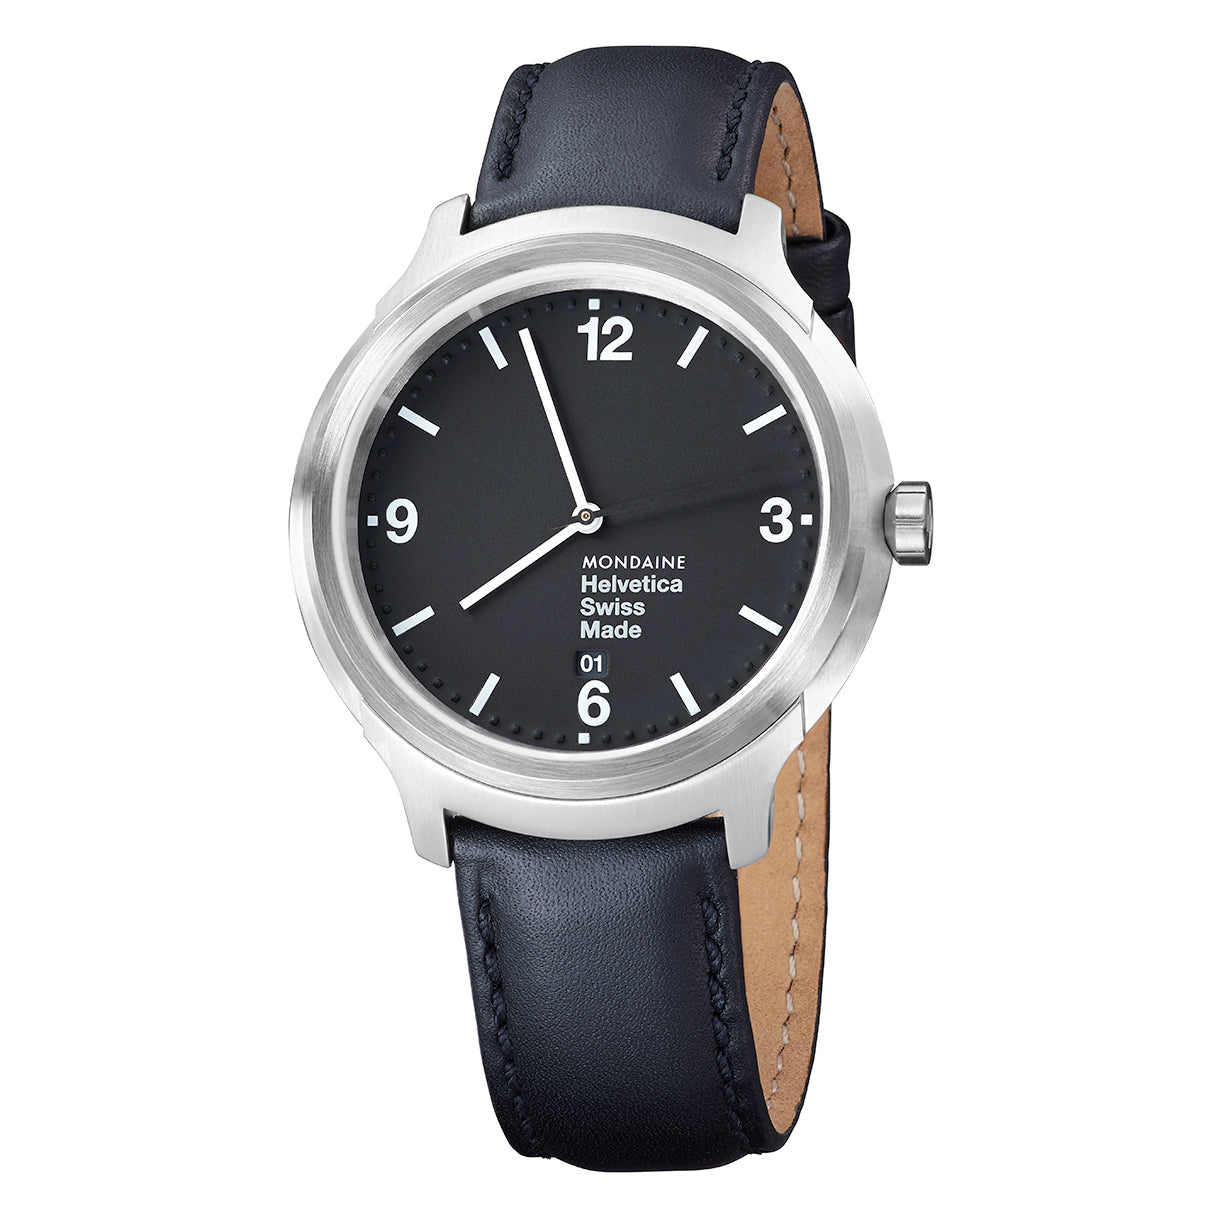 Mondaine MH1.B1220.LB Helvetica No1 Bold Black Leather Men's Watch